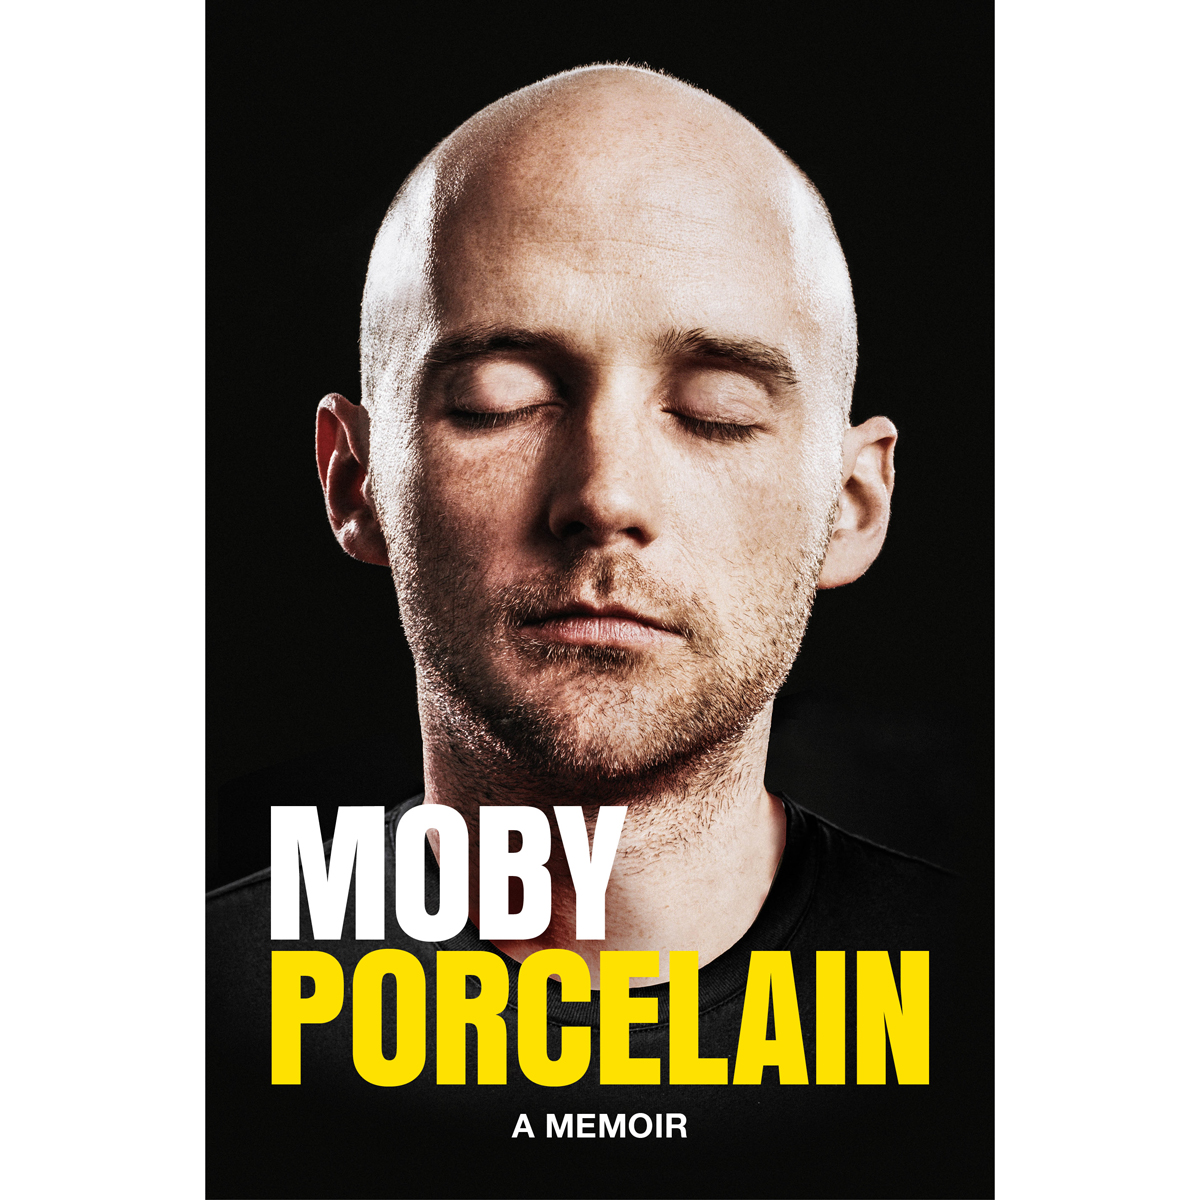 Porcelain by Moby